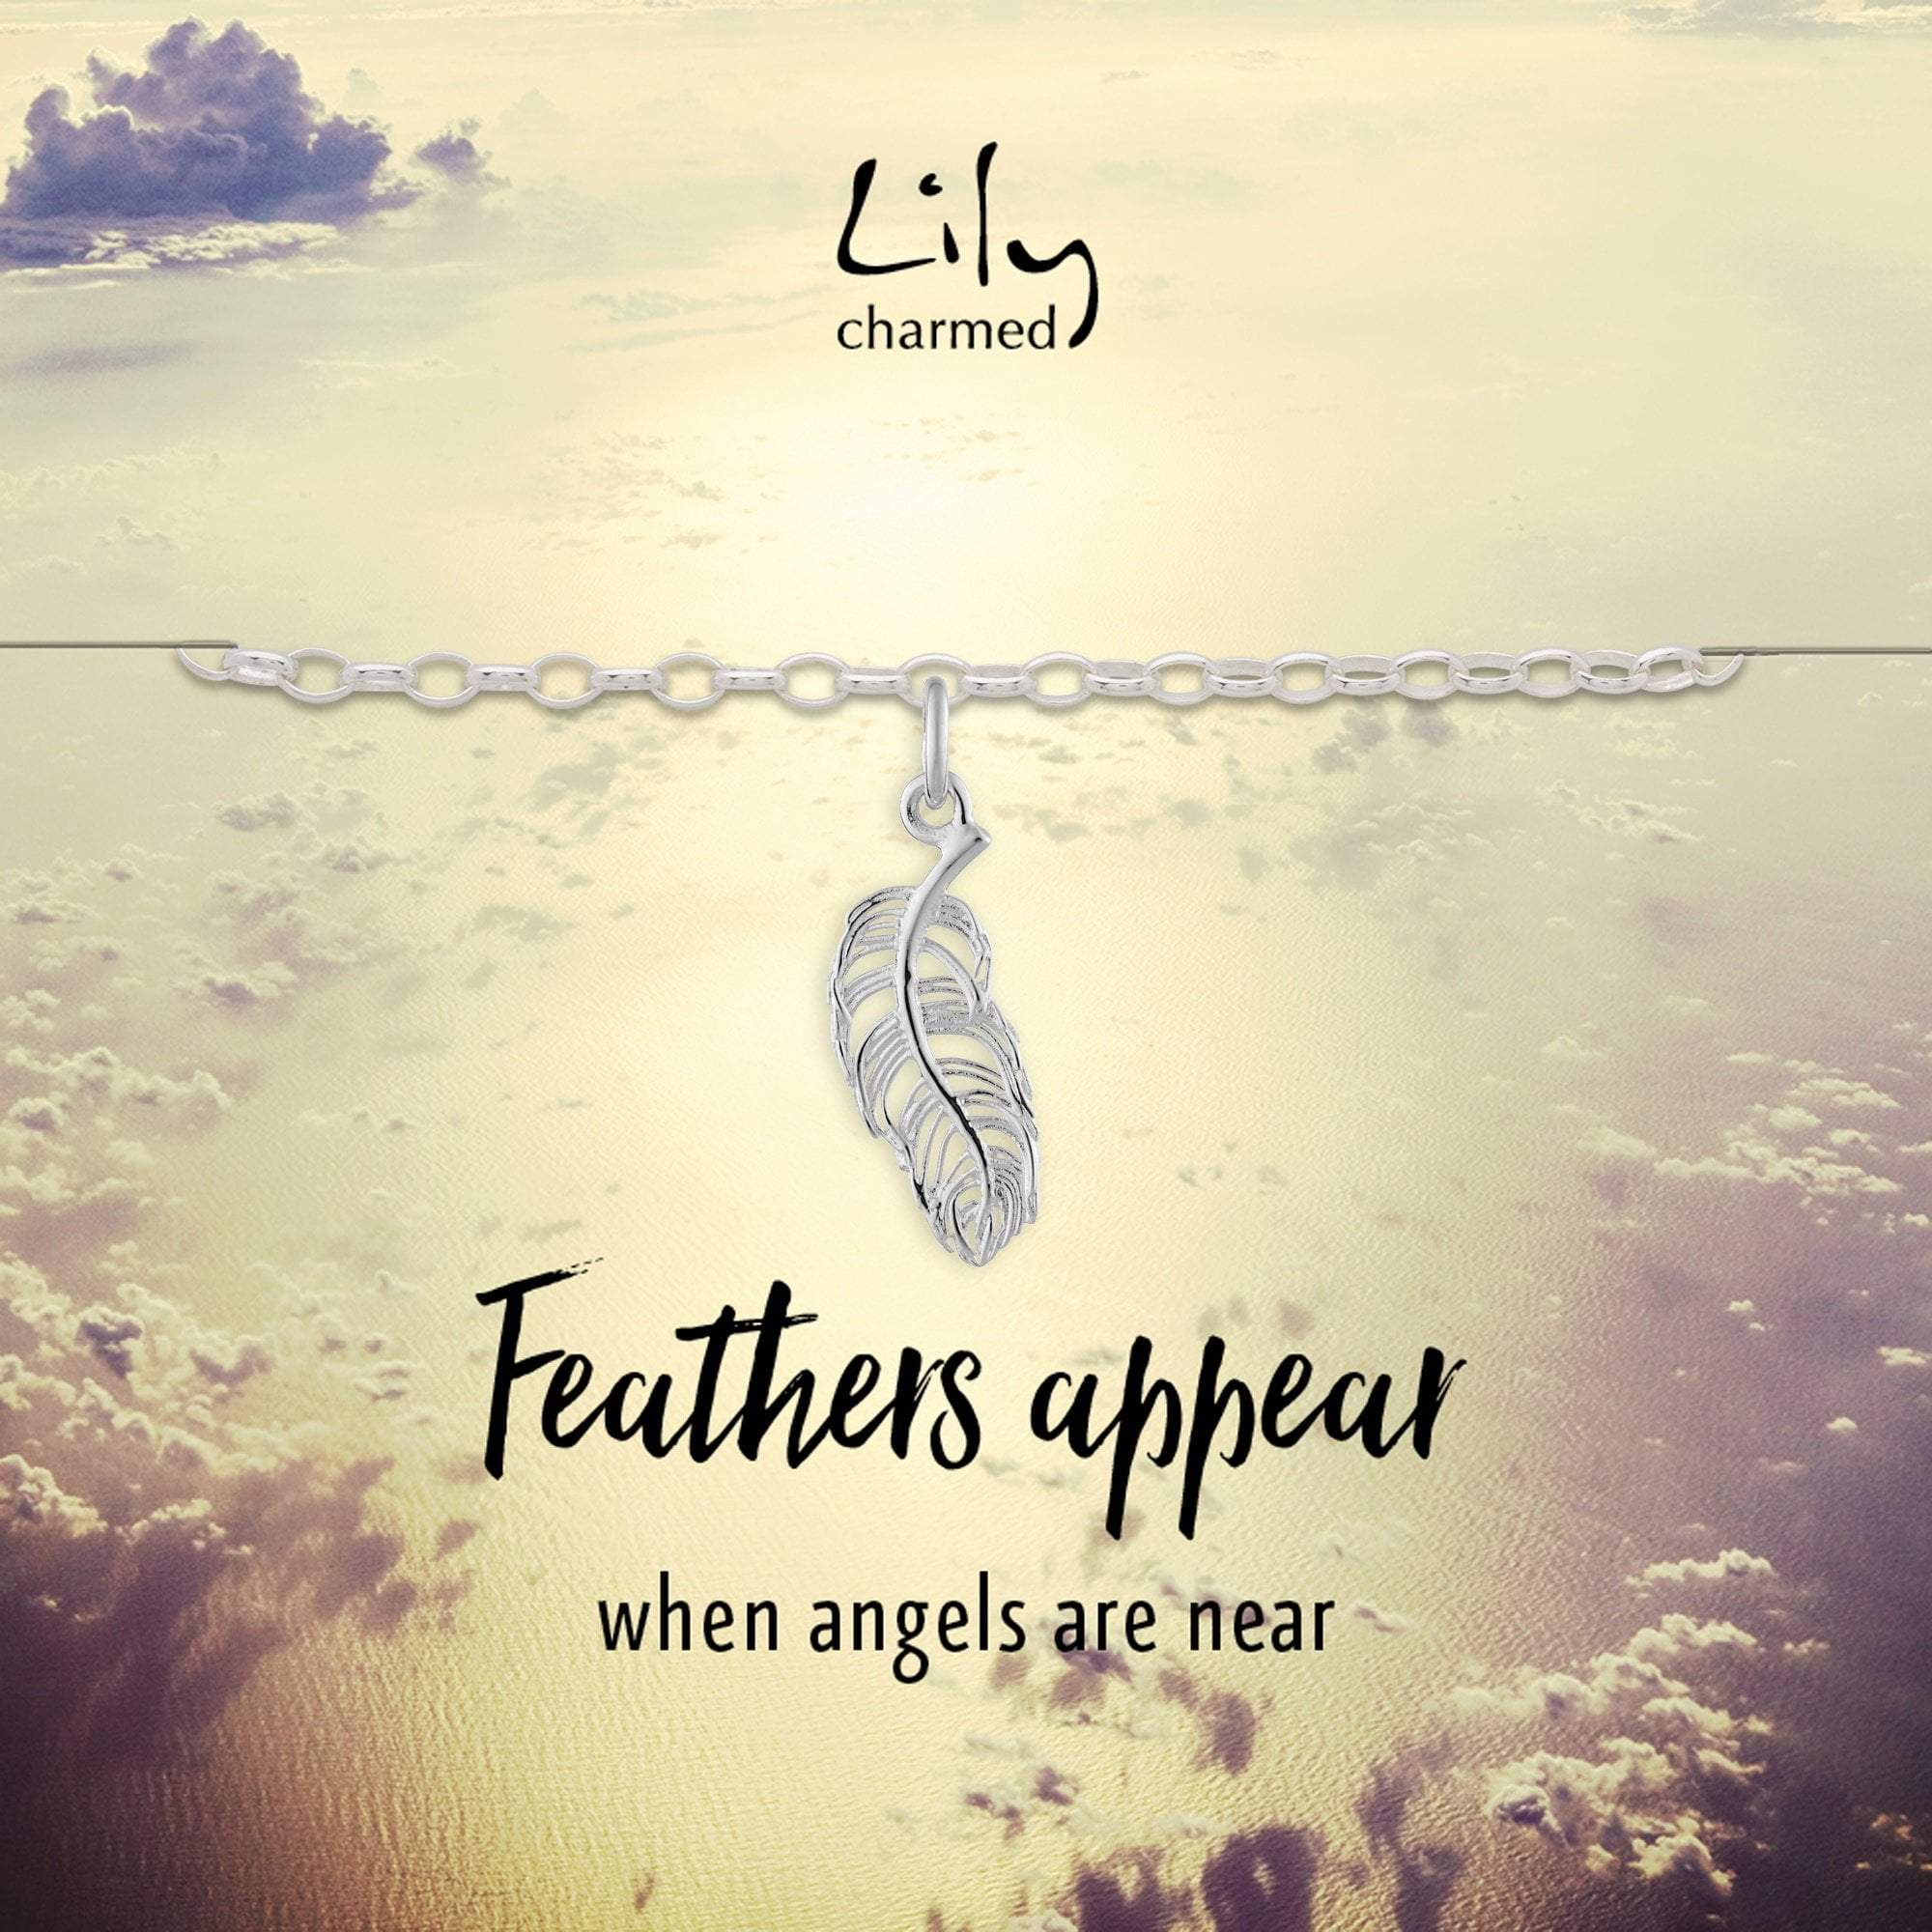 Silver Feather Charm Bracelet with 'Feathers Appear' Message - Lily Charmed